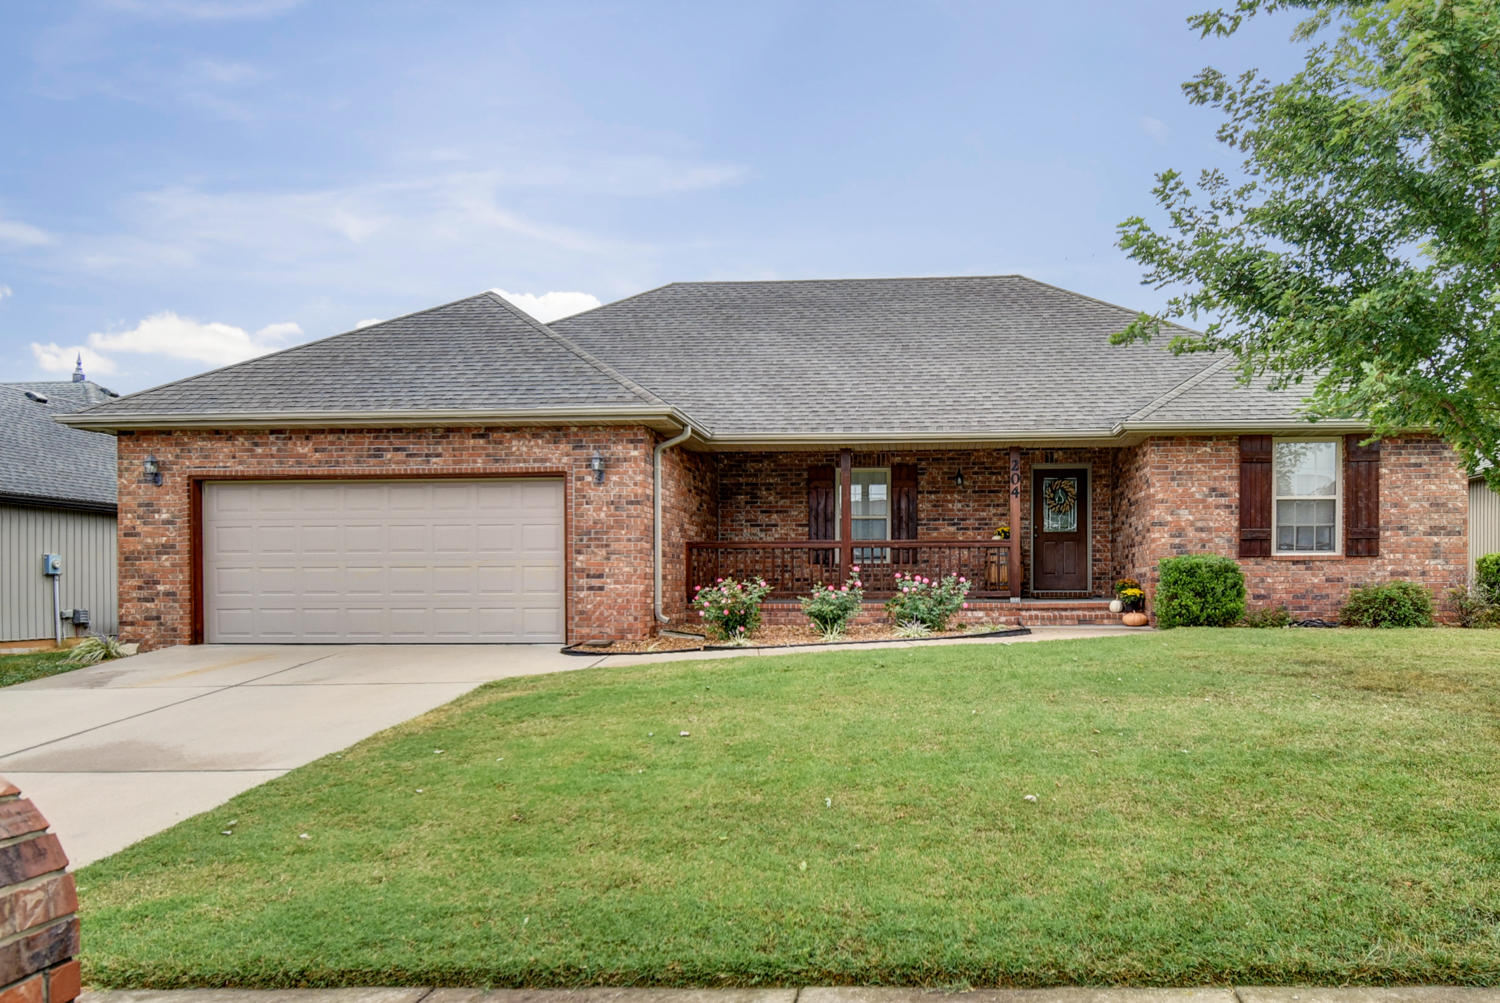 204 North Bonda Way Nixa, MO 65714